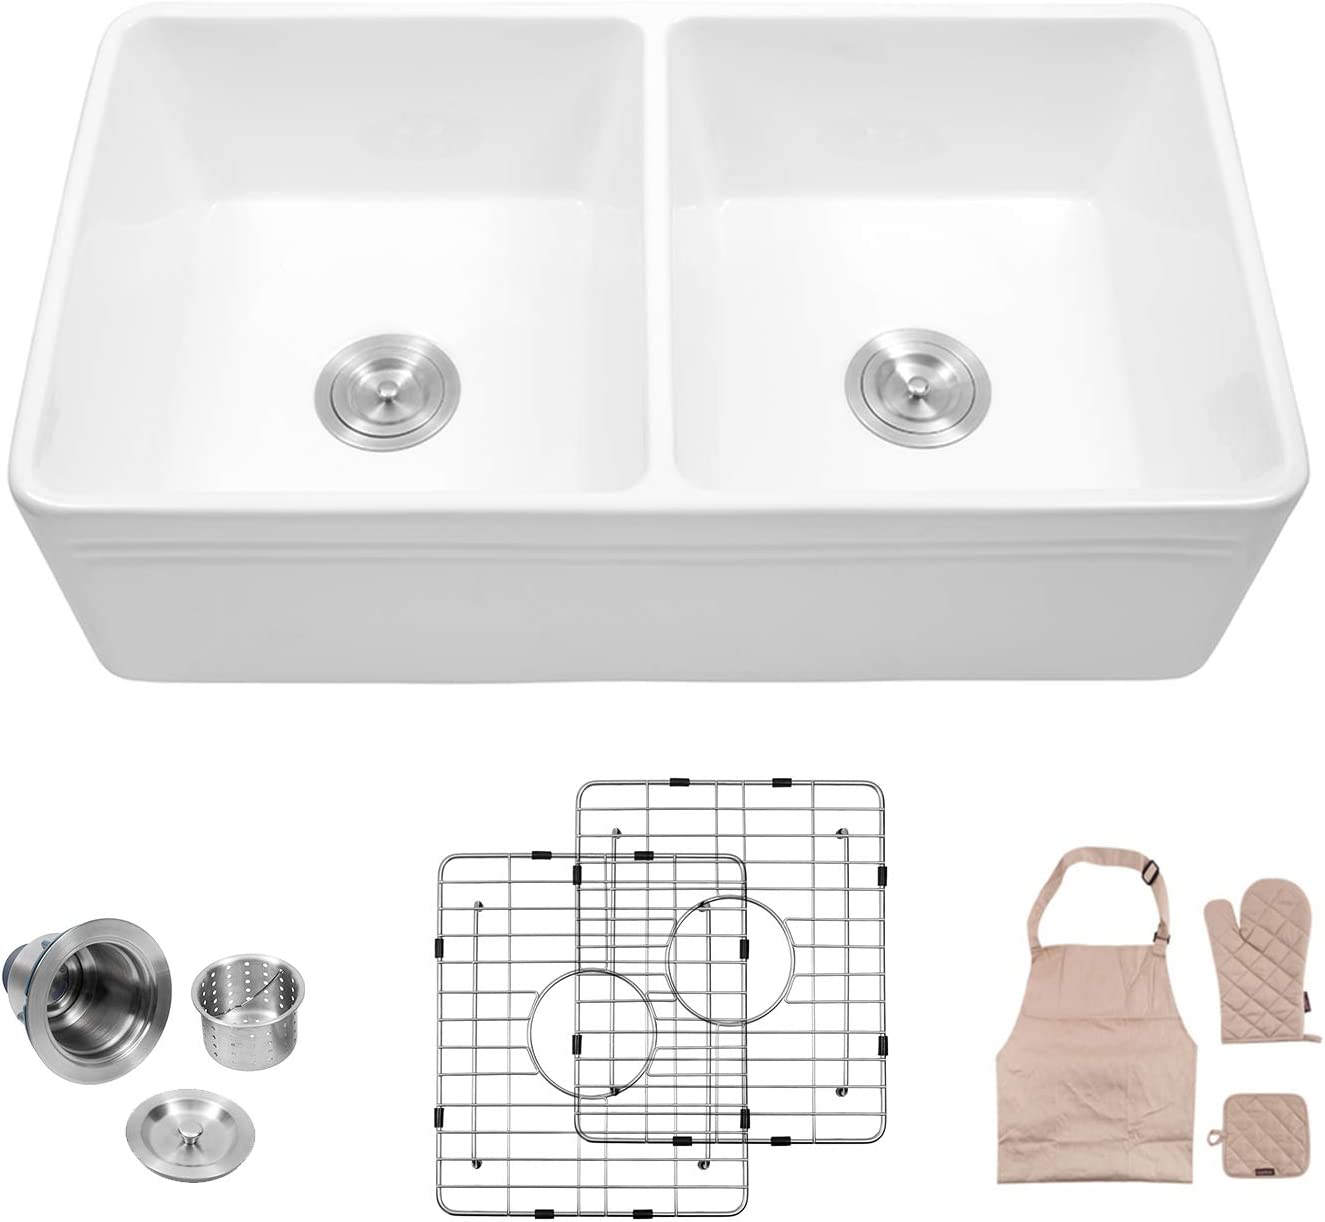 Lordear 33 Double Bowl Kitchen Sinks,Fireclay farmhouse Sink White Farmhouse Apron-Front Kitchen Sink